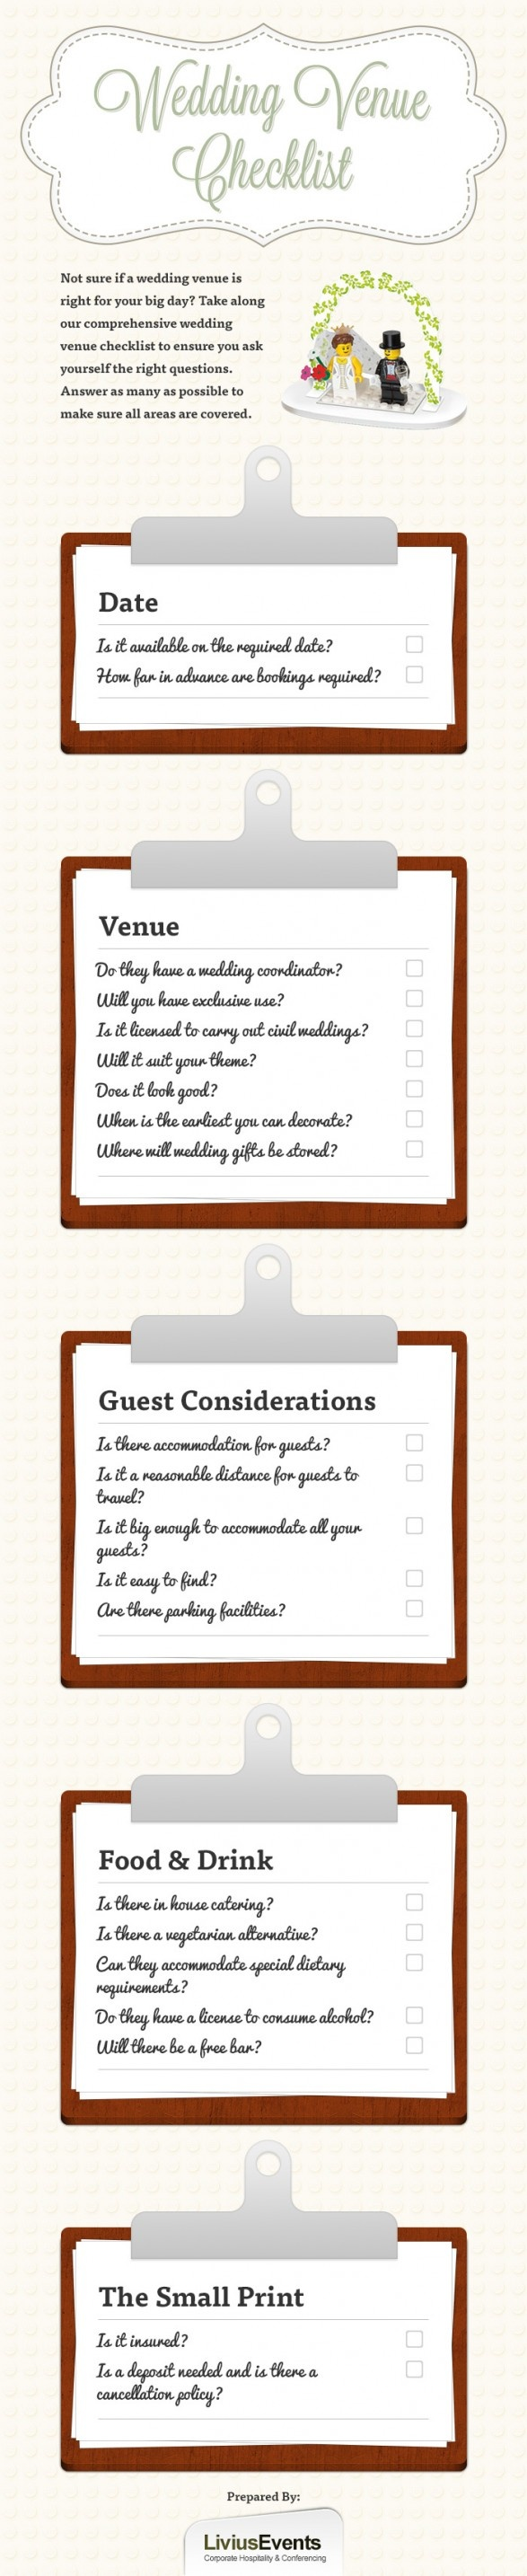 Not Sure If A Wedding Venue Meets All Requirements Use This Visual Checklist To Answer Questions Covering The Important Areas